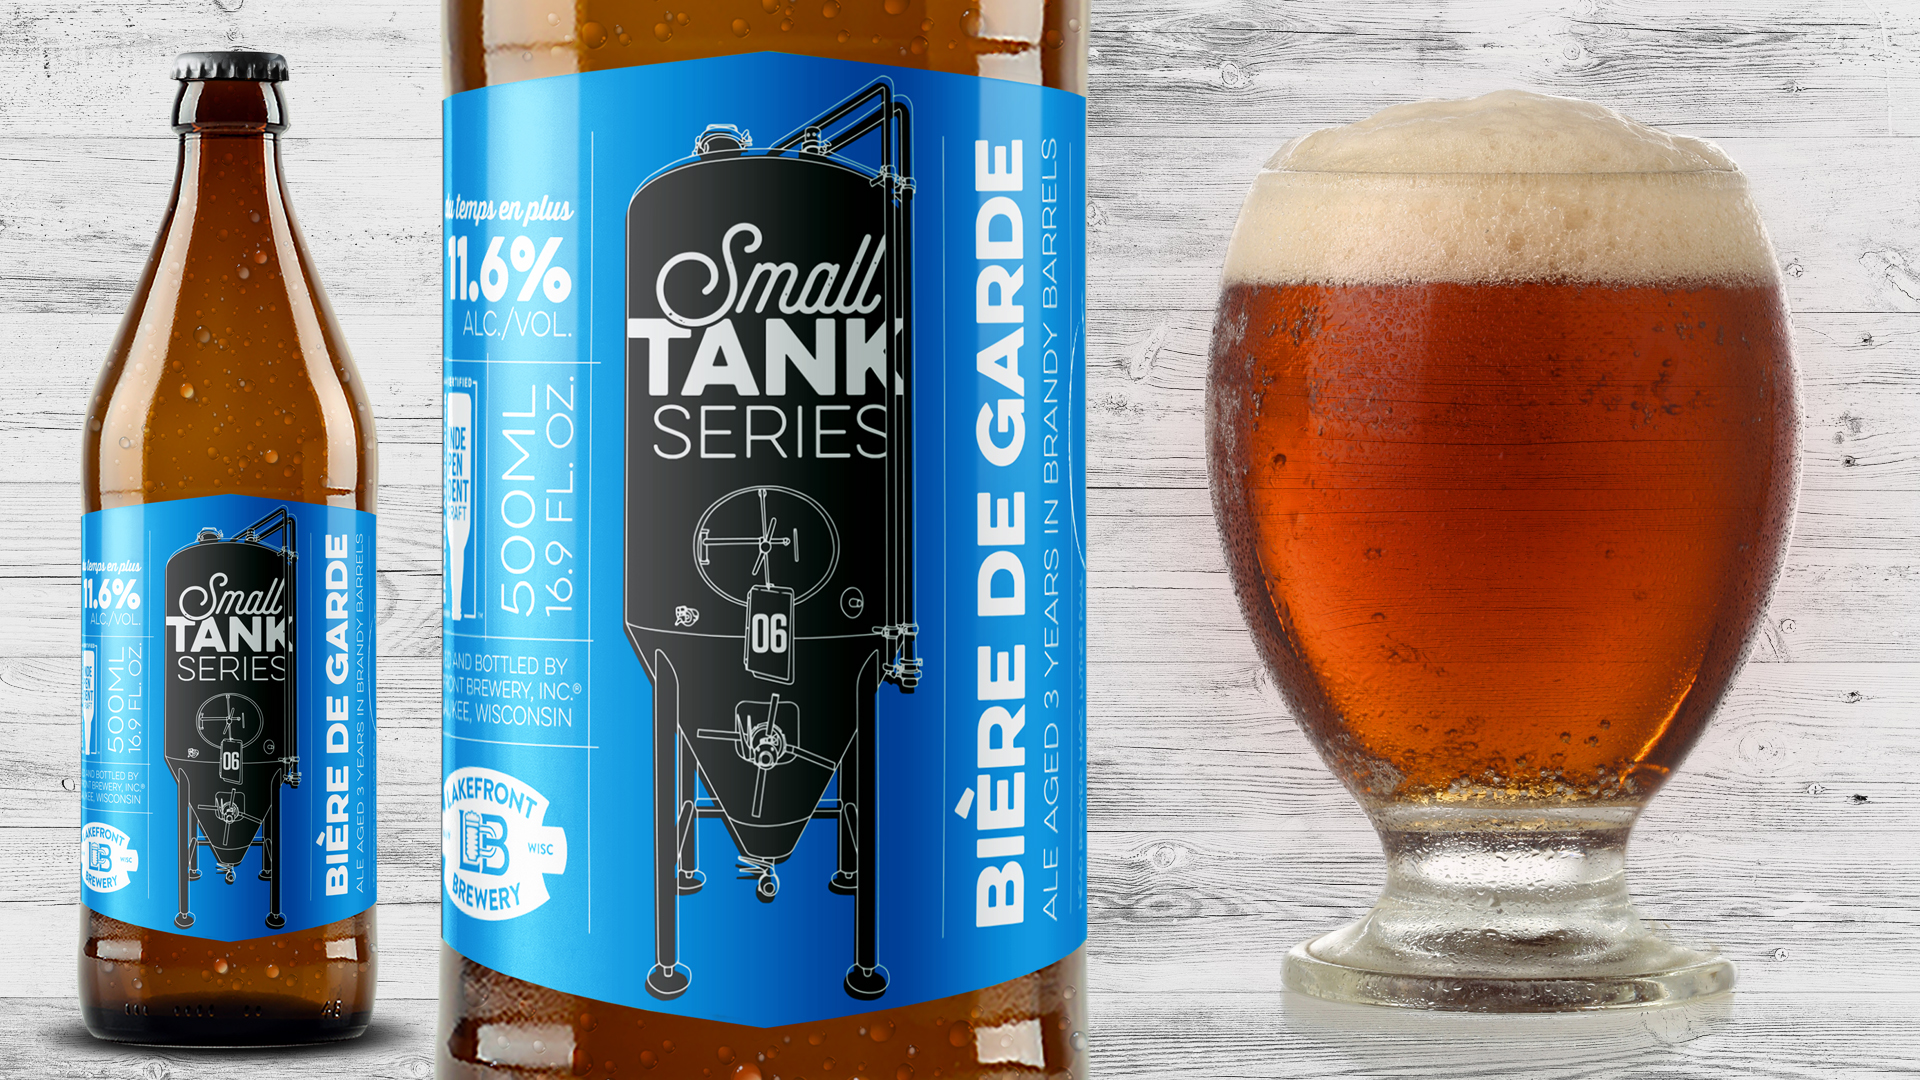 Lakefront Brewery Releases #06 Small Tank Series July 7